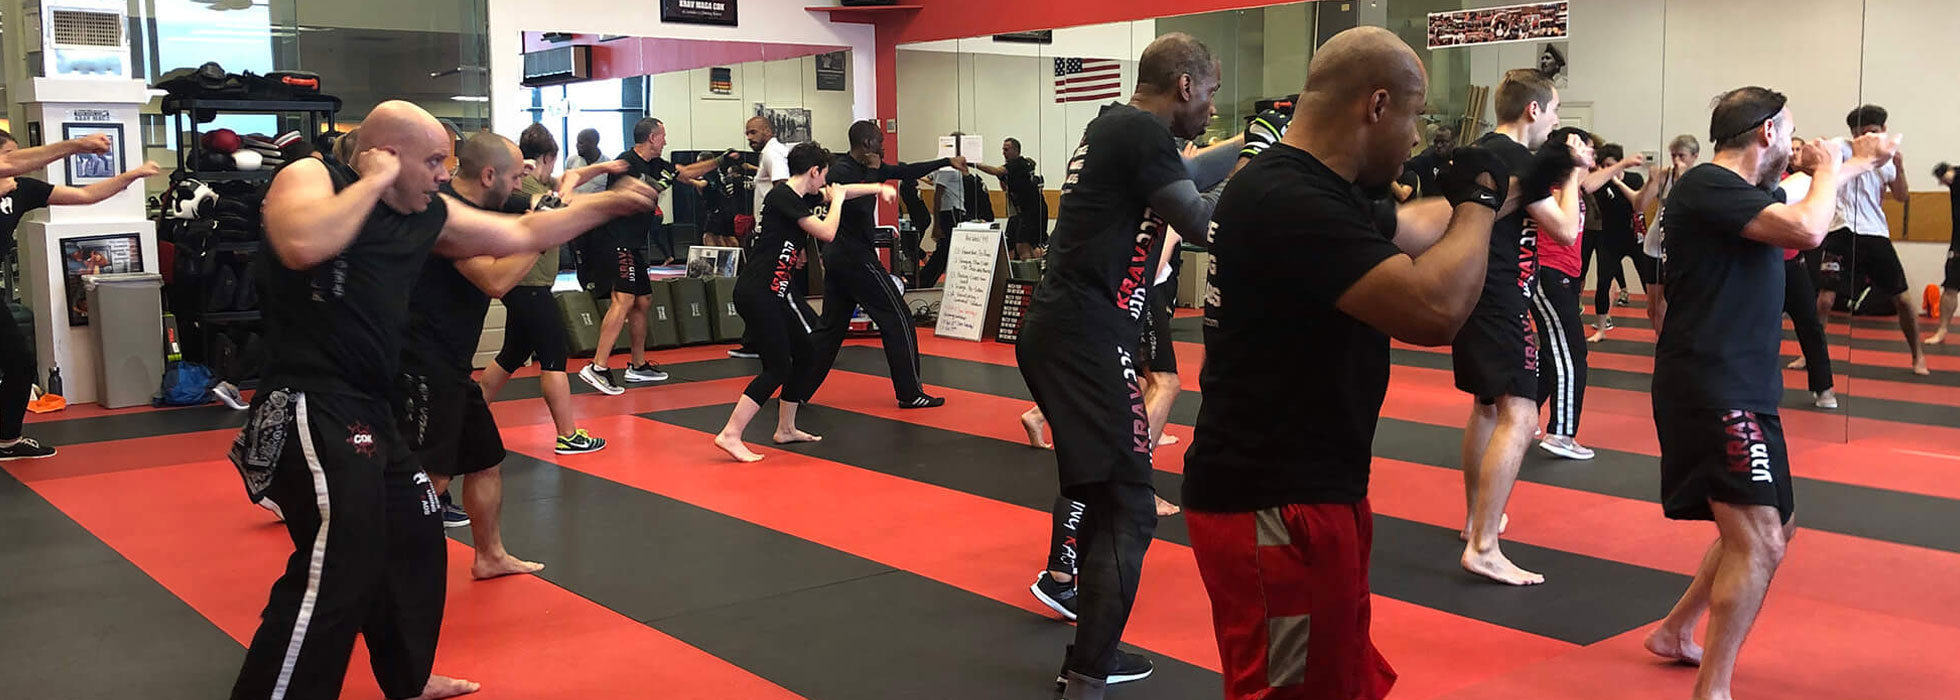 Why Krav Maga CDK Is Ranked One Of The Best Gyms In Chevy Chase MD, Why Krav Maga CDK Is Ranked One Of The Best Gyms near Washington DC, Why Krav Maga CDK Is Ranked One Of The Best Gyms near the DMV area, Why Krav Maga CDK Is Ranked One Of The Best Gyms near Bethesda MD, Why Krav Maga CDK Is Ranked One Of The Best Gyms near Silver Springs MD